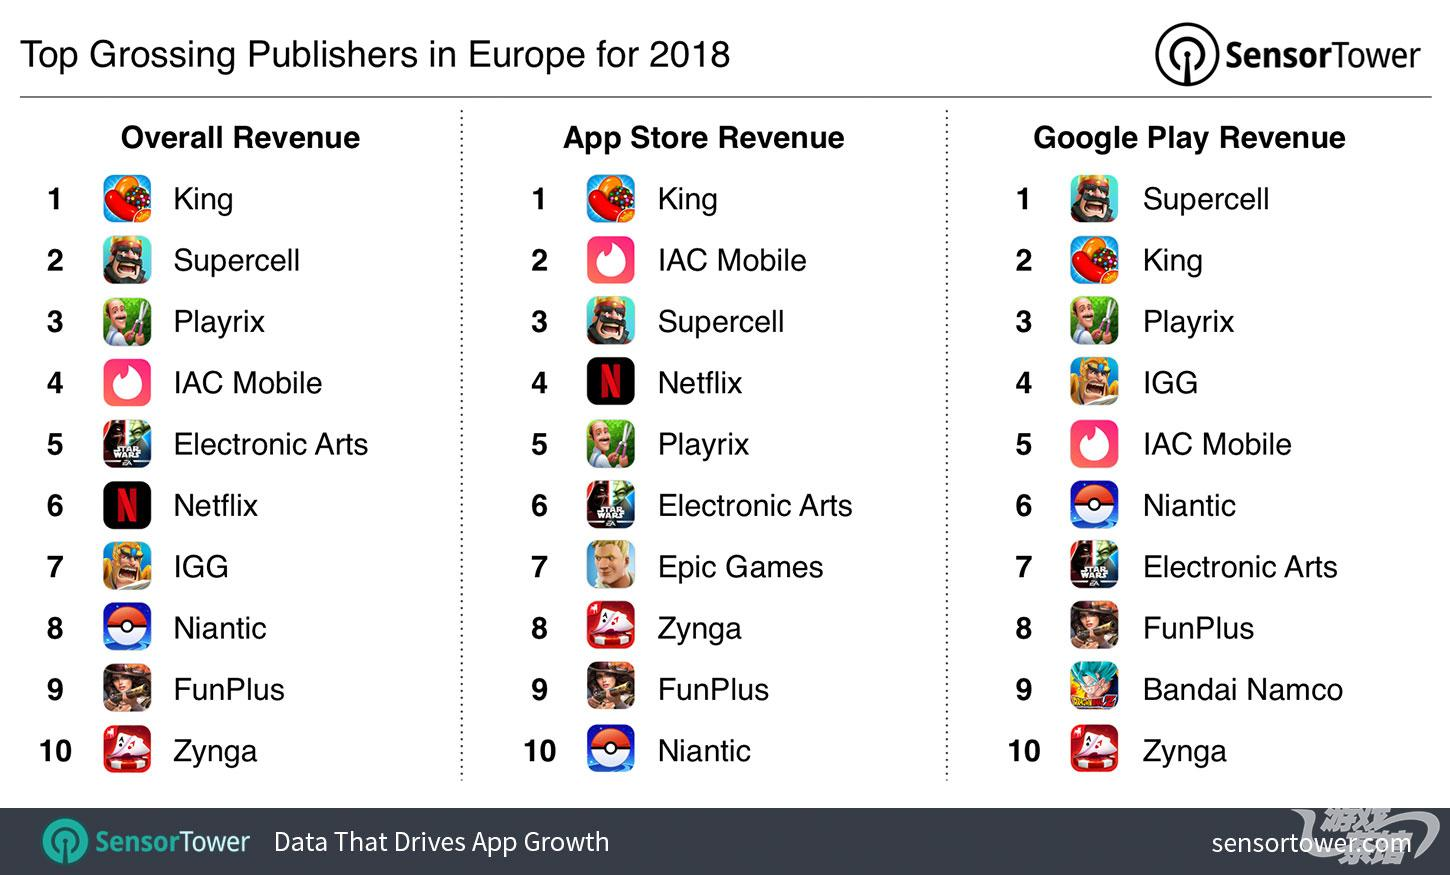 top-grossing-publishers-europe-2018.jpg